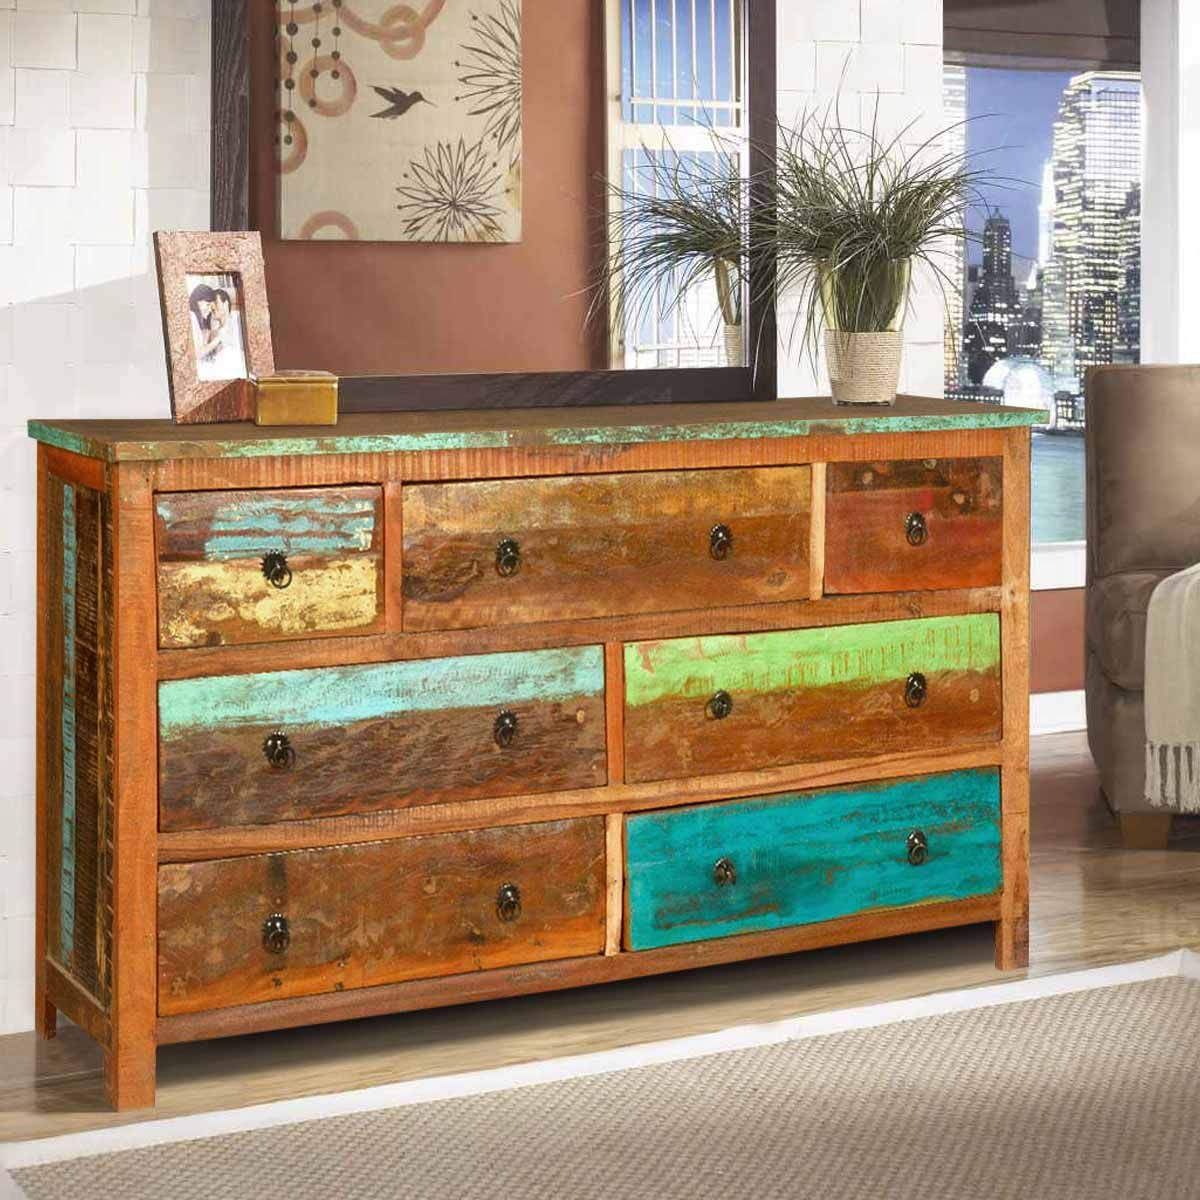 We use ecoresponsible old wood to create our Sierra